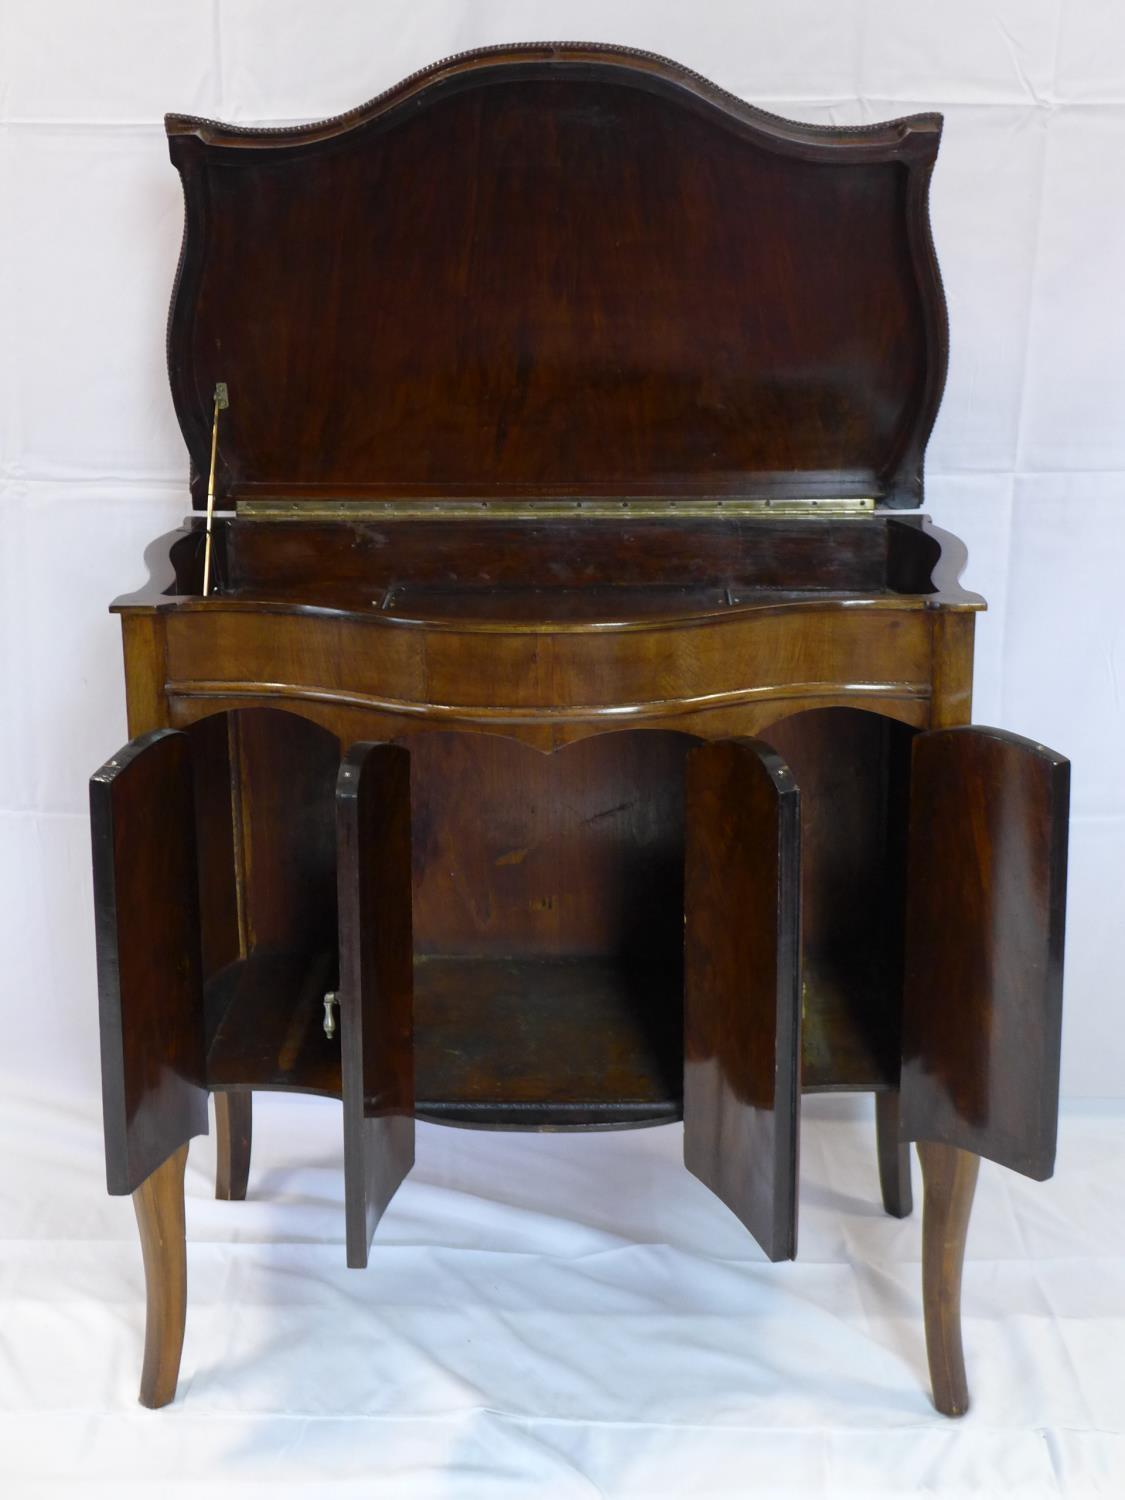 Lot 526 - An early 20th century walnut gramophone cabinet, H.90 W.84 D.50cm